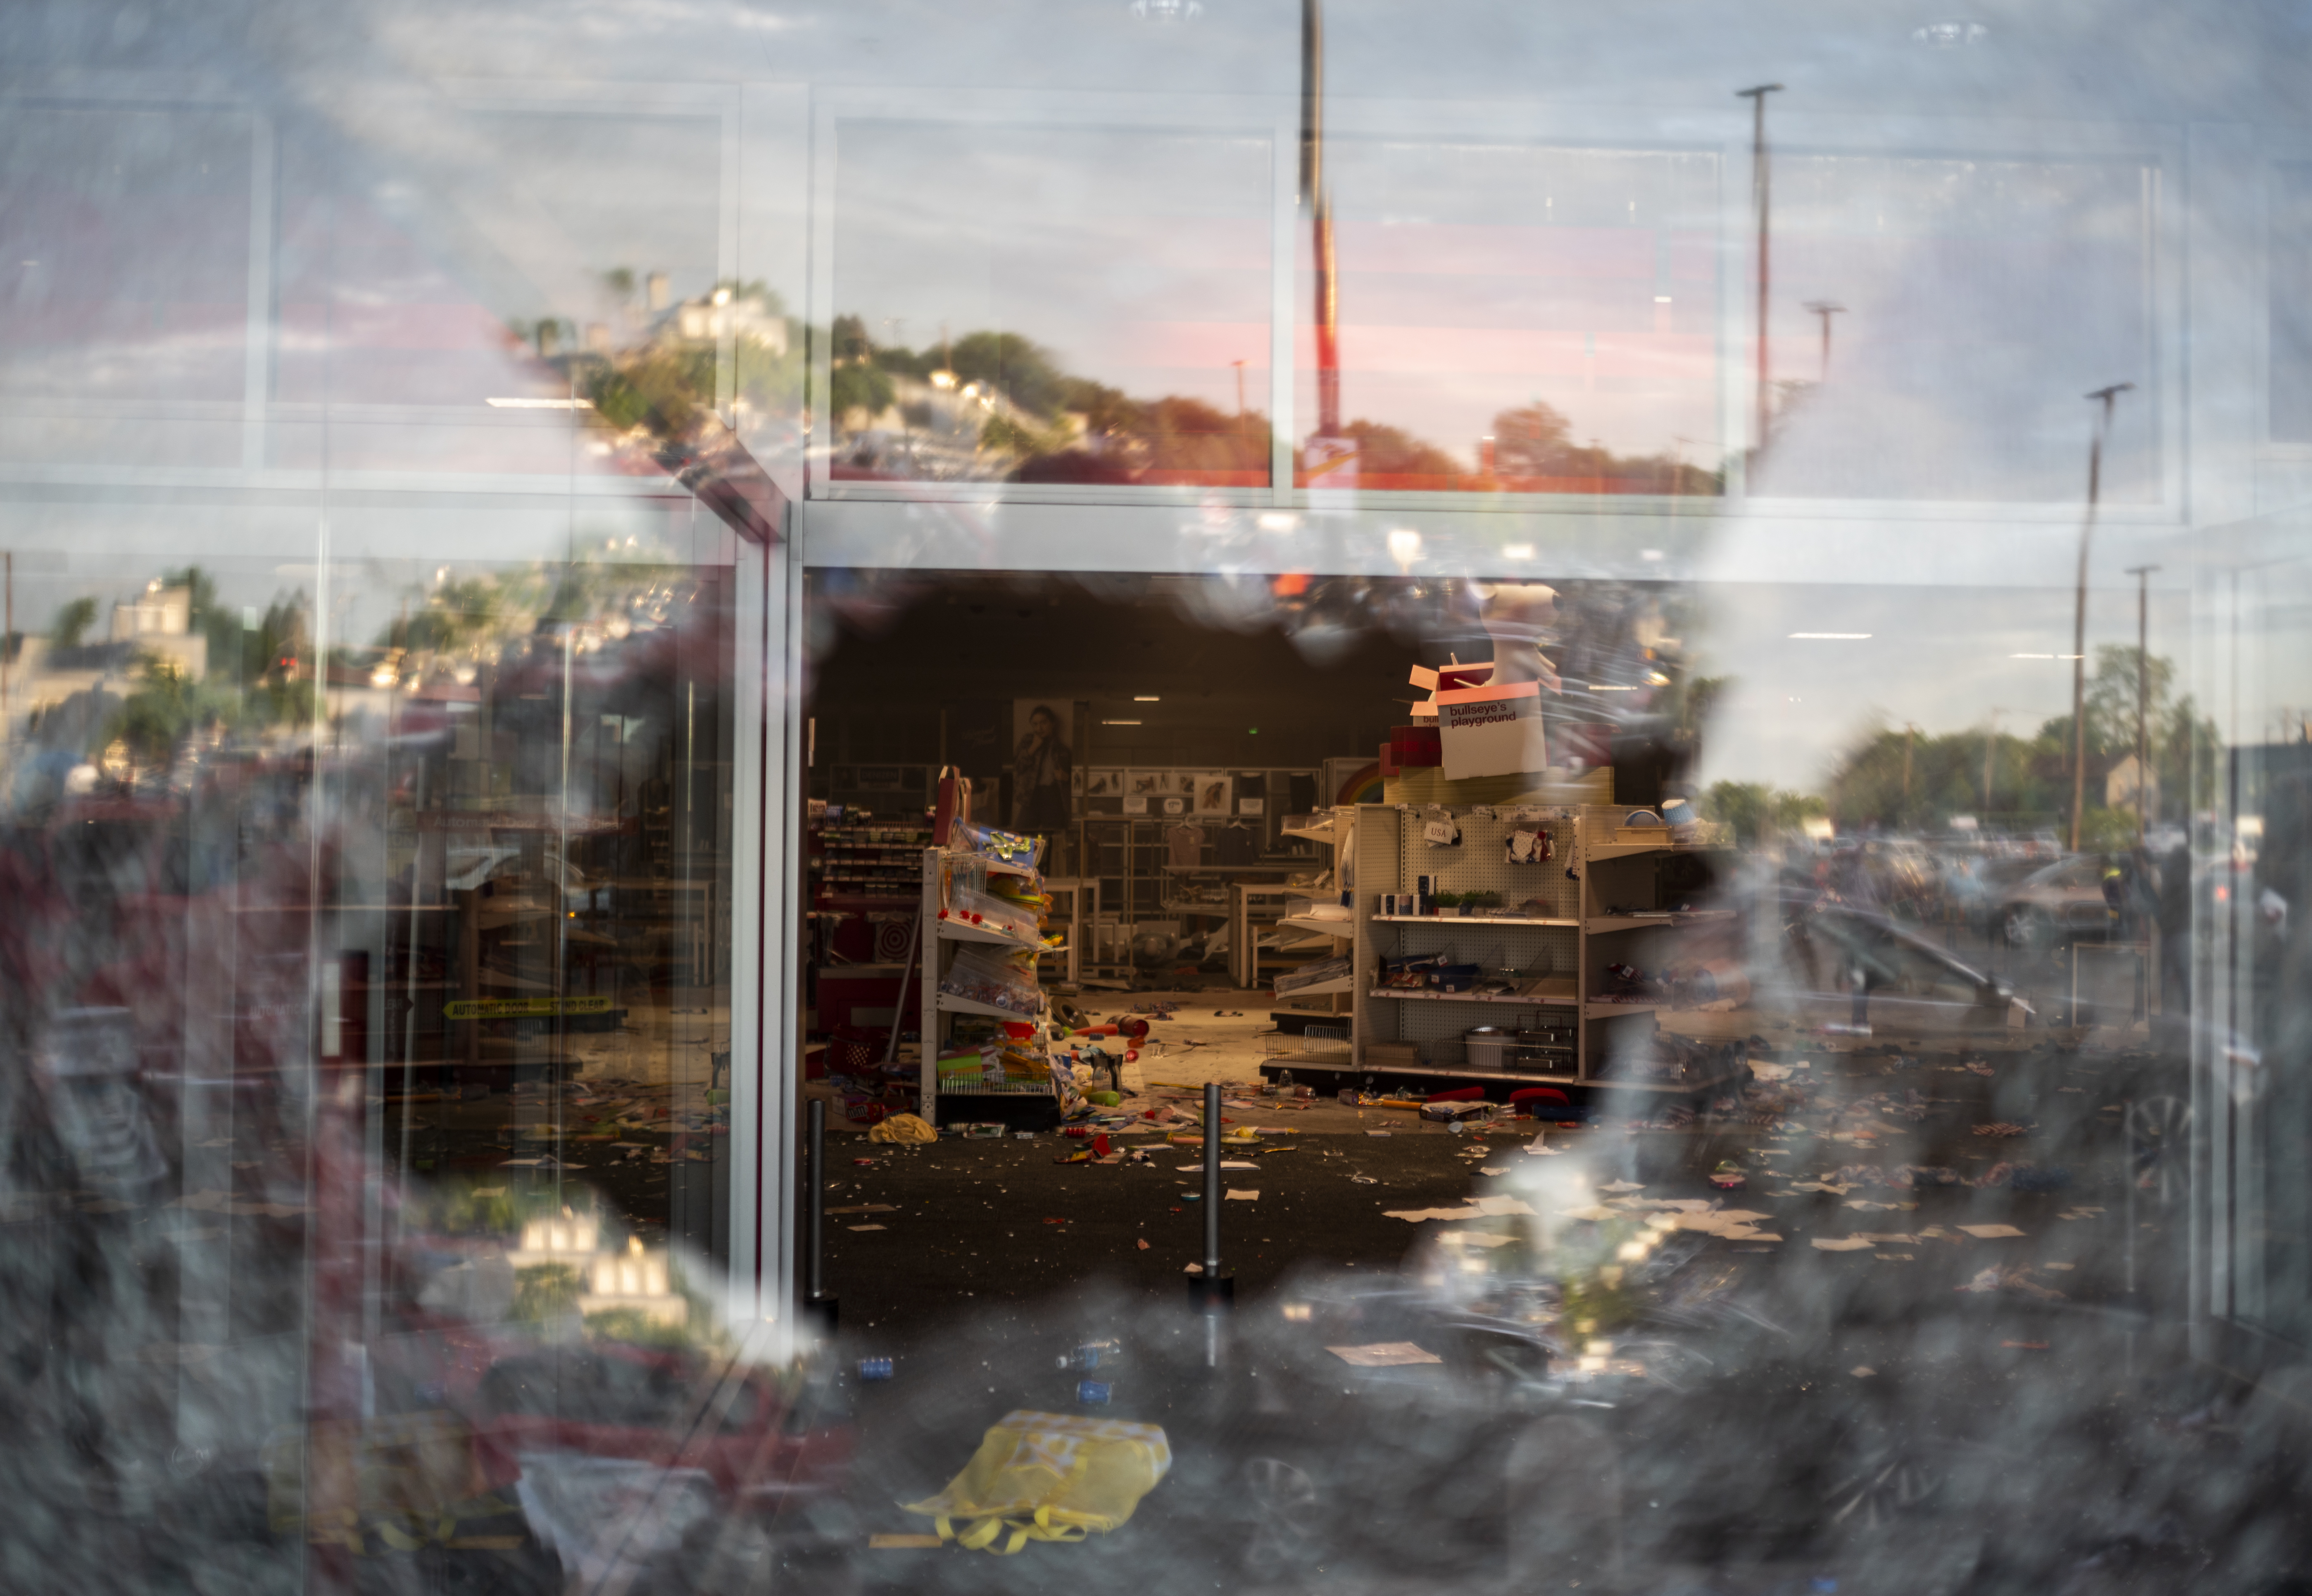 A view inside a Target store through a broken window on May 27, 2020 in Minneapolis, Minnesota. (Stephen Maturen/Getty Images)